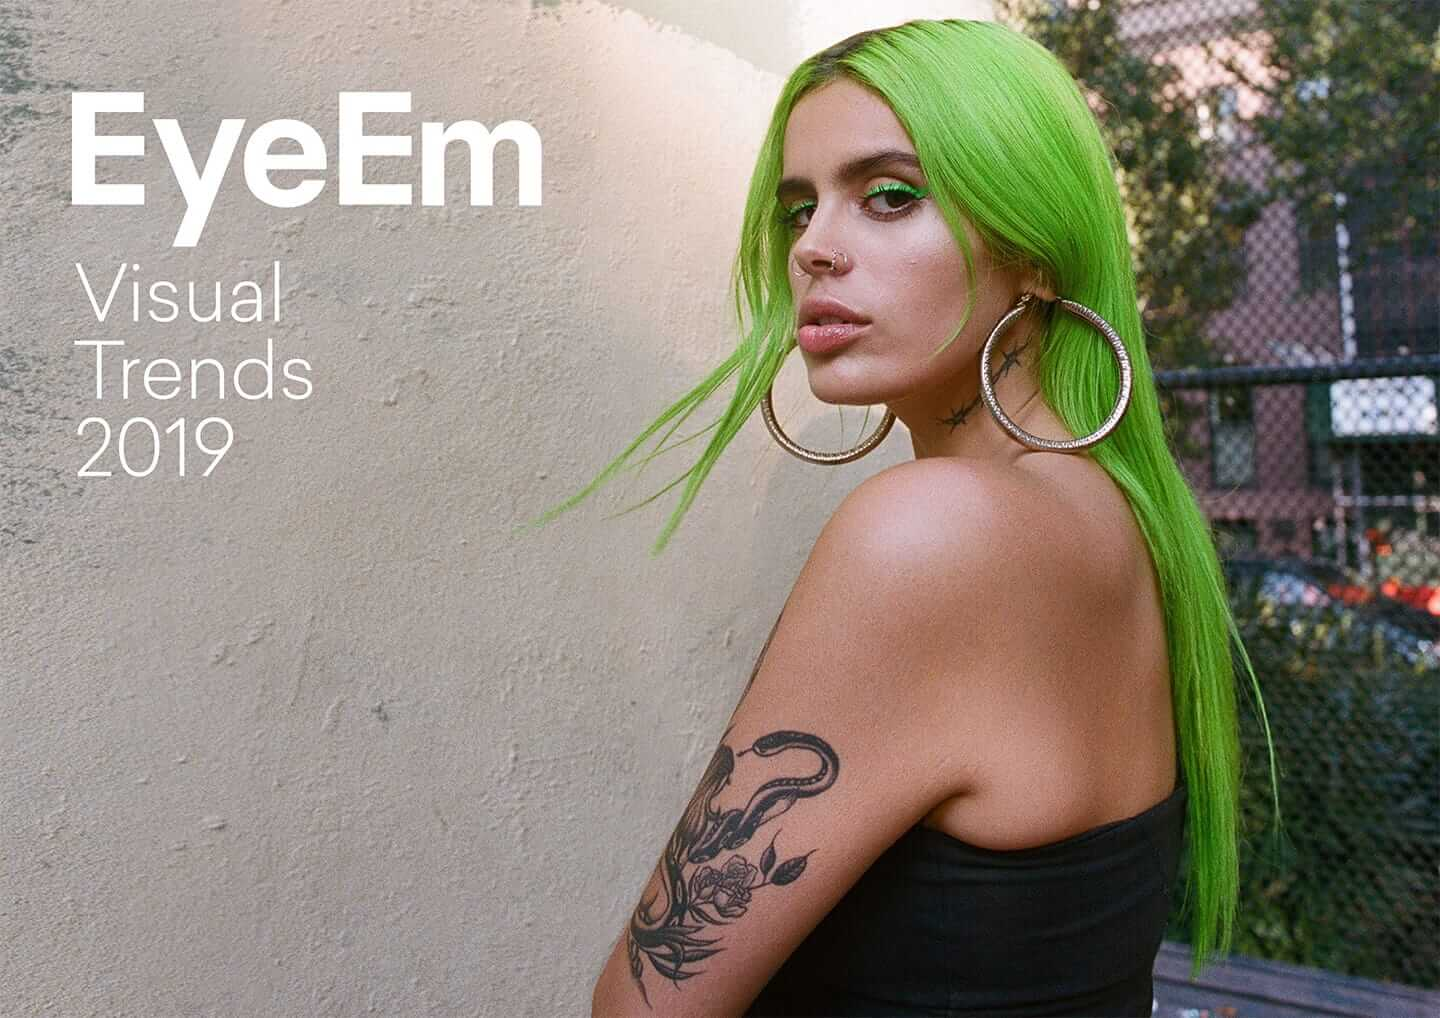 EyeEm Visual Photography Trends Report